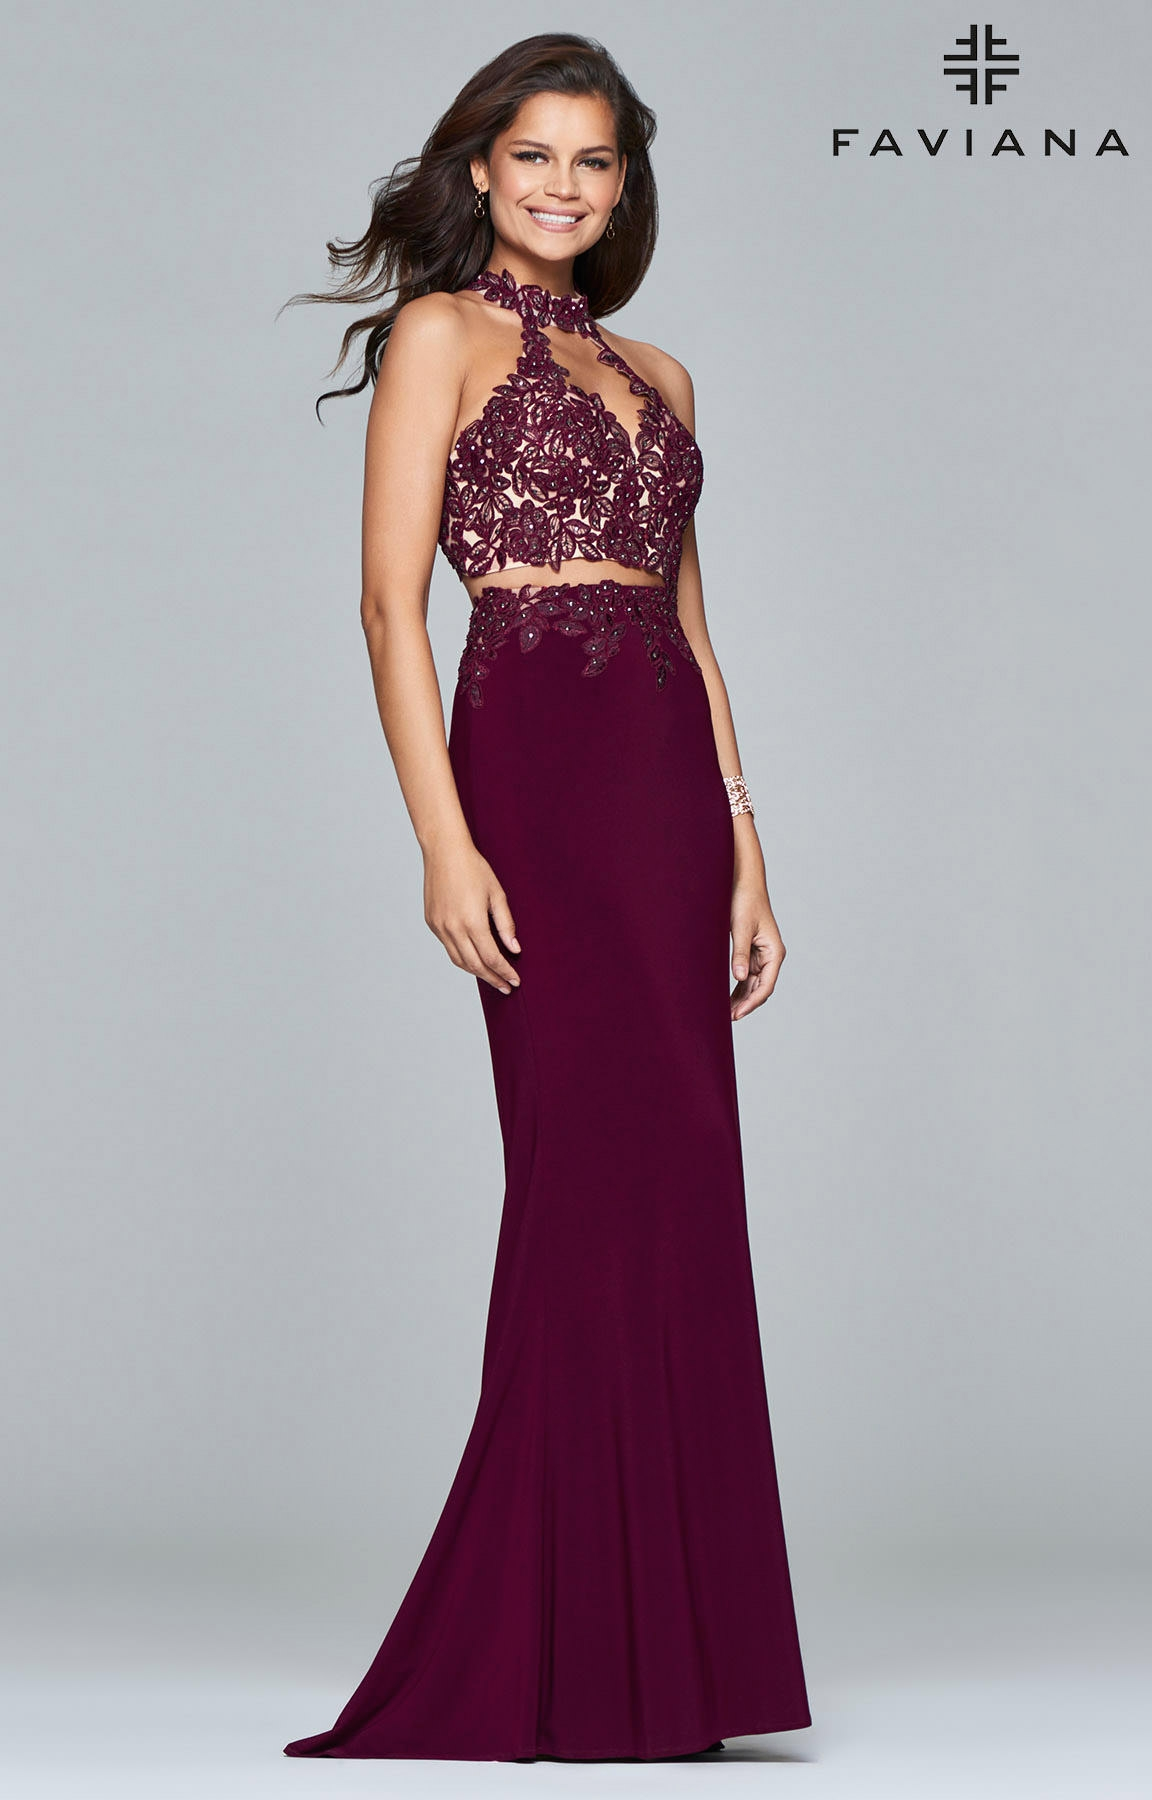 Faviana 7967 Jewel Toned Two Piece With Lace Gown Prom Dress